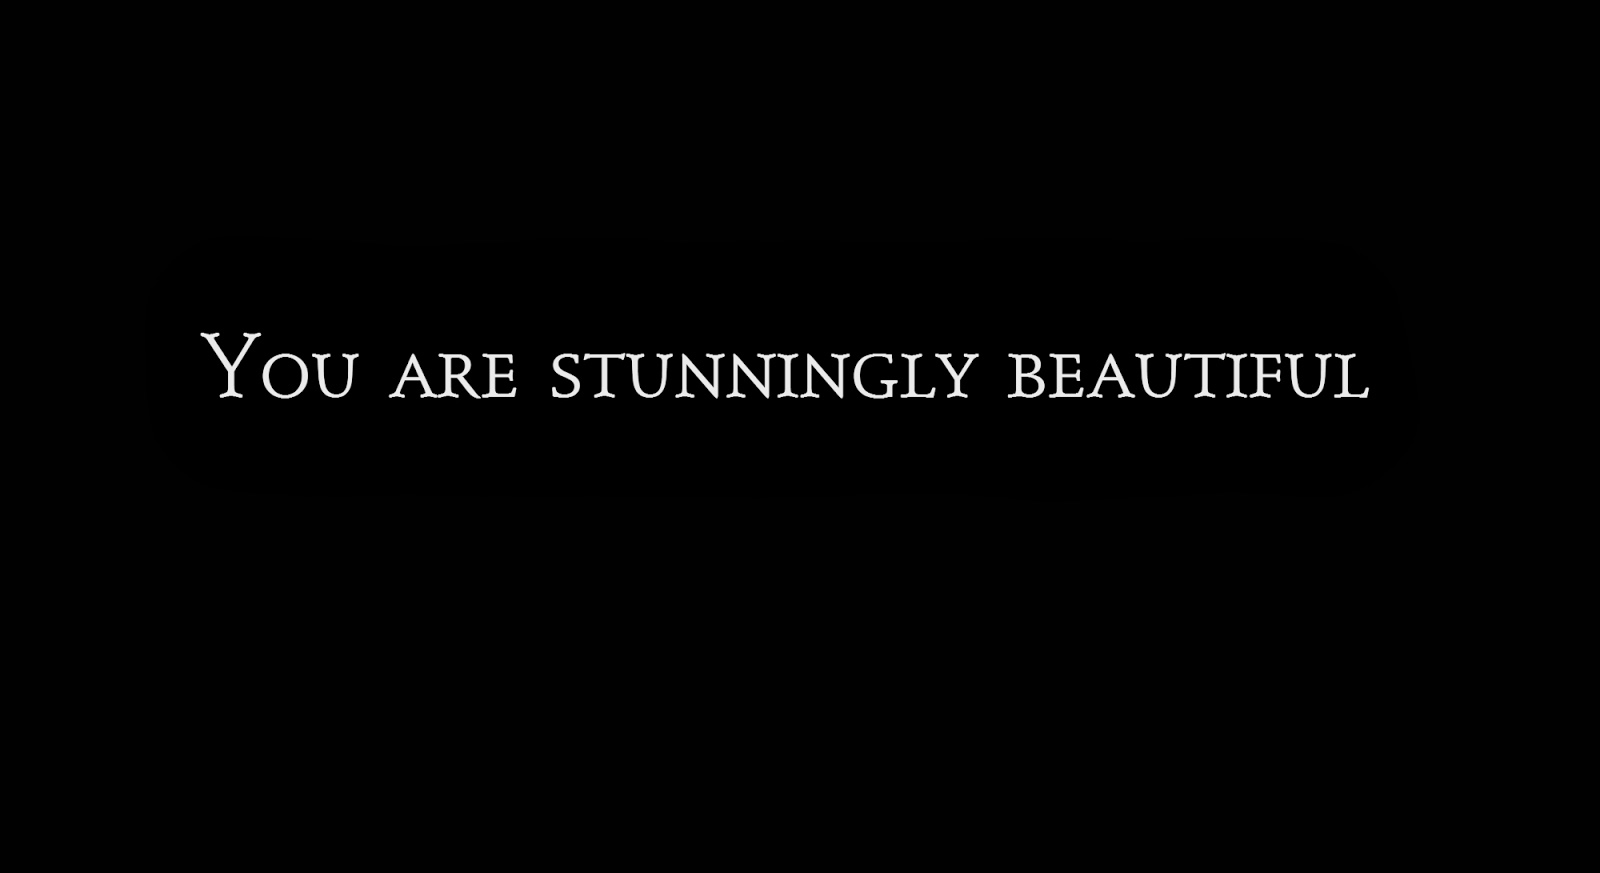 You are stunningly beautiful